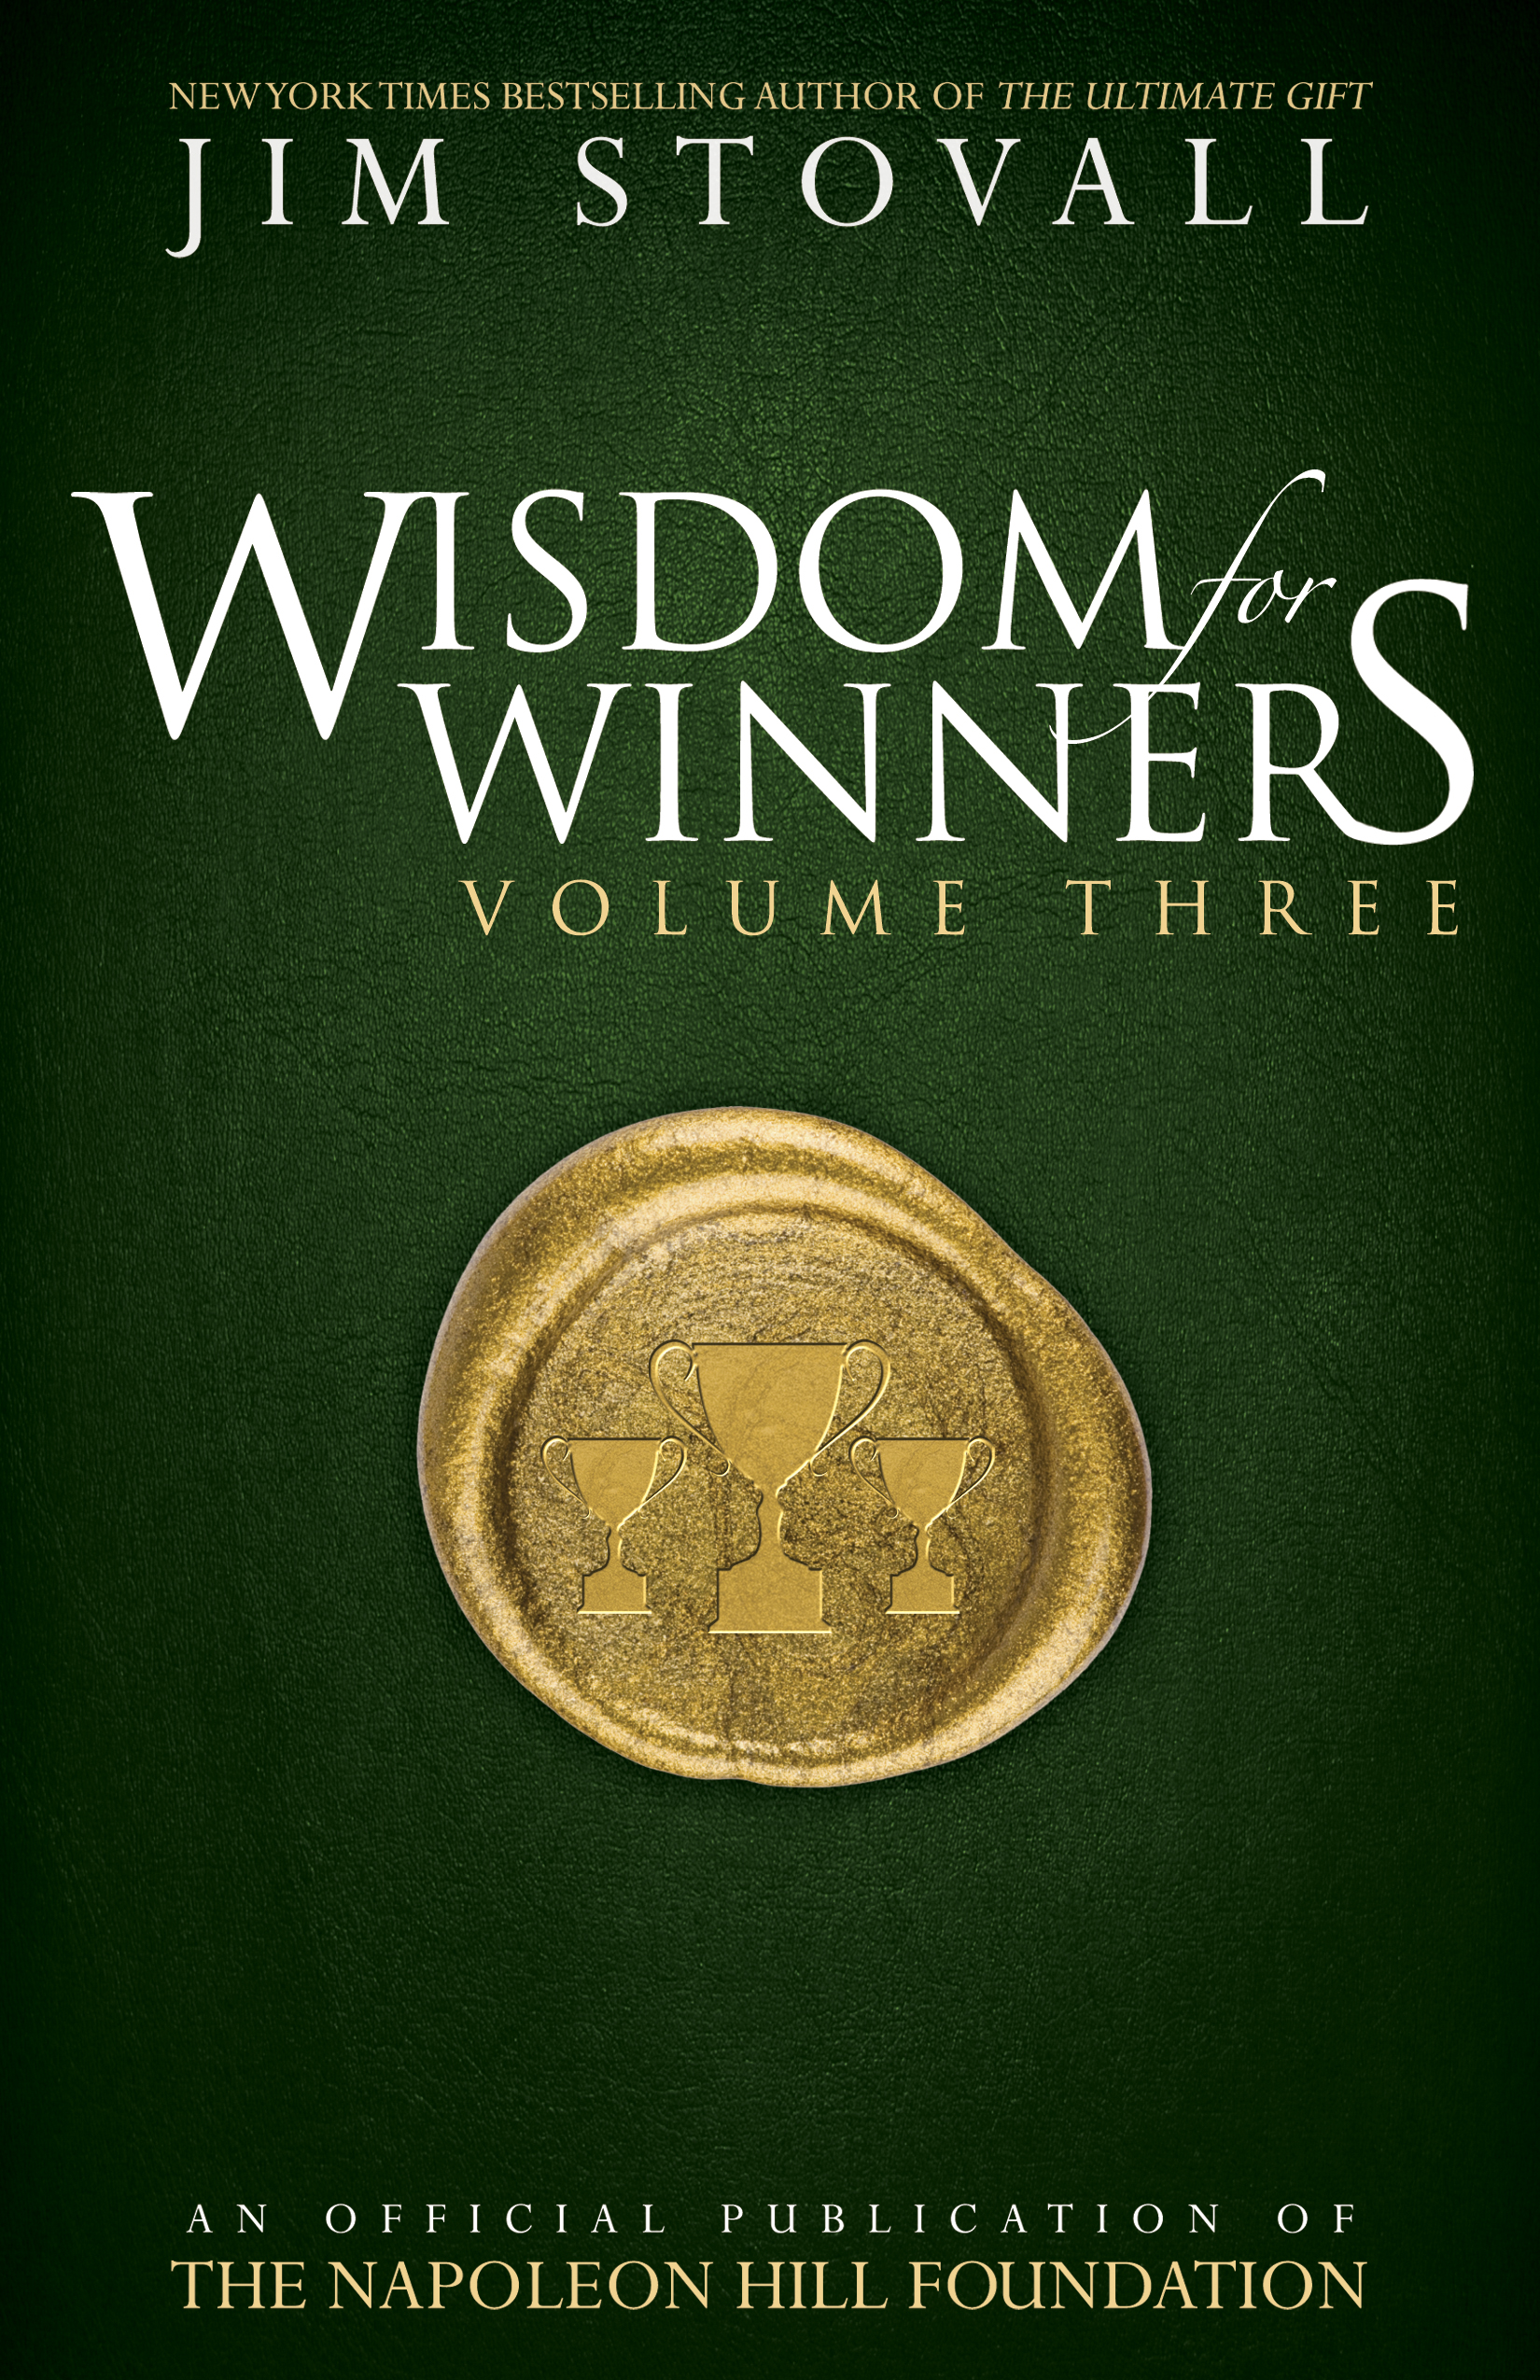 Wisdom for Winners Volume Three - By jim stovall